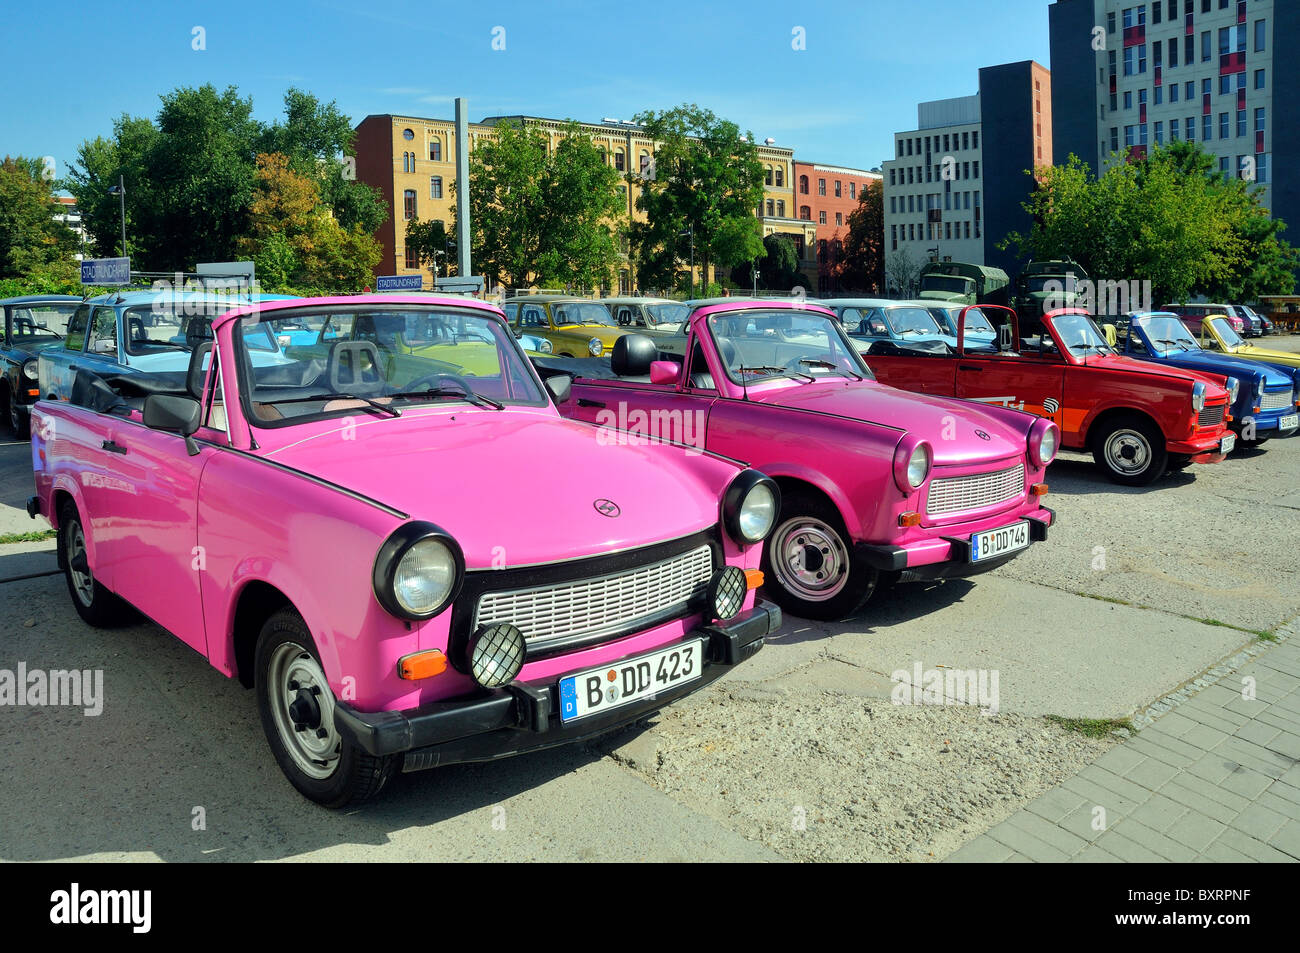 Trabant typical DDR car, Berlin, Germany, Europe - Stock Image